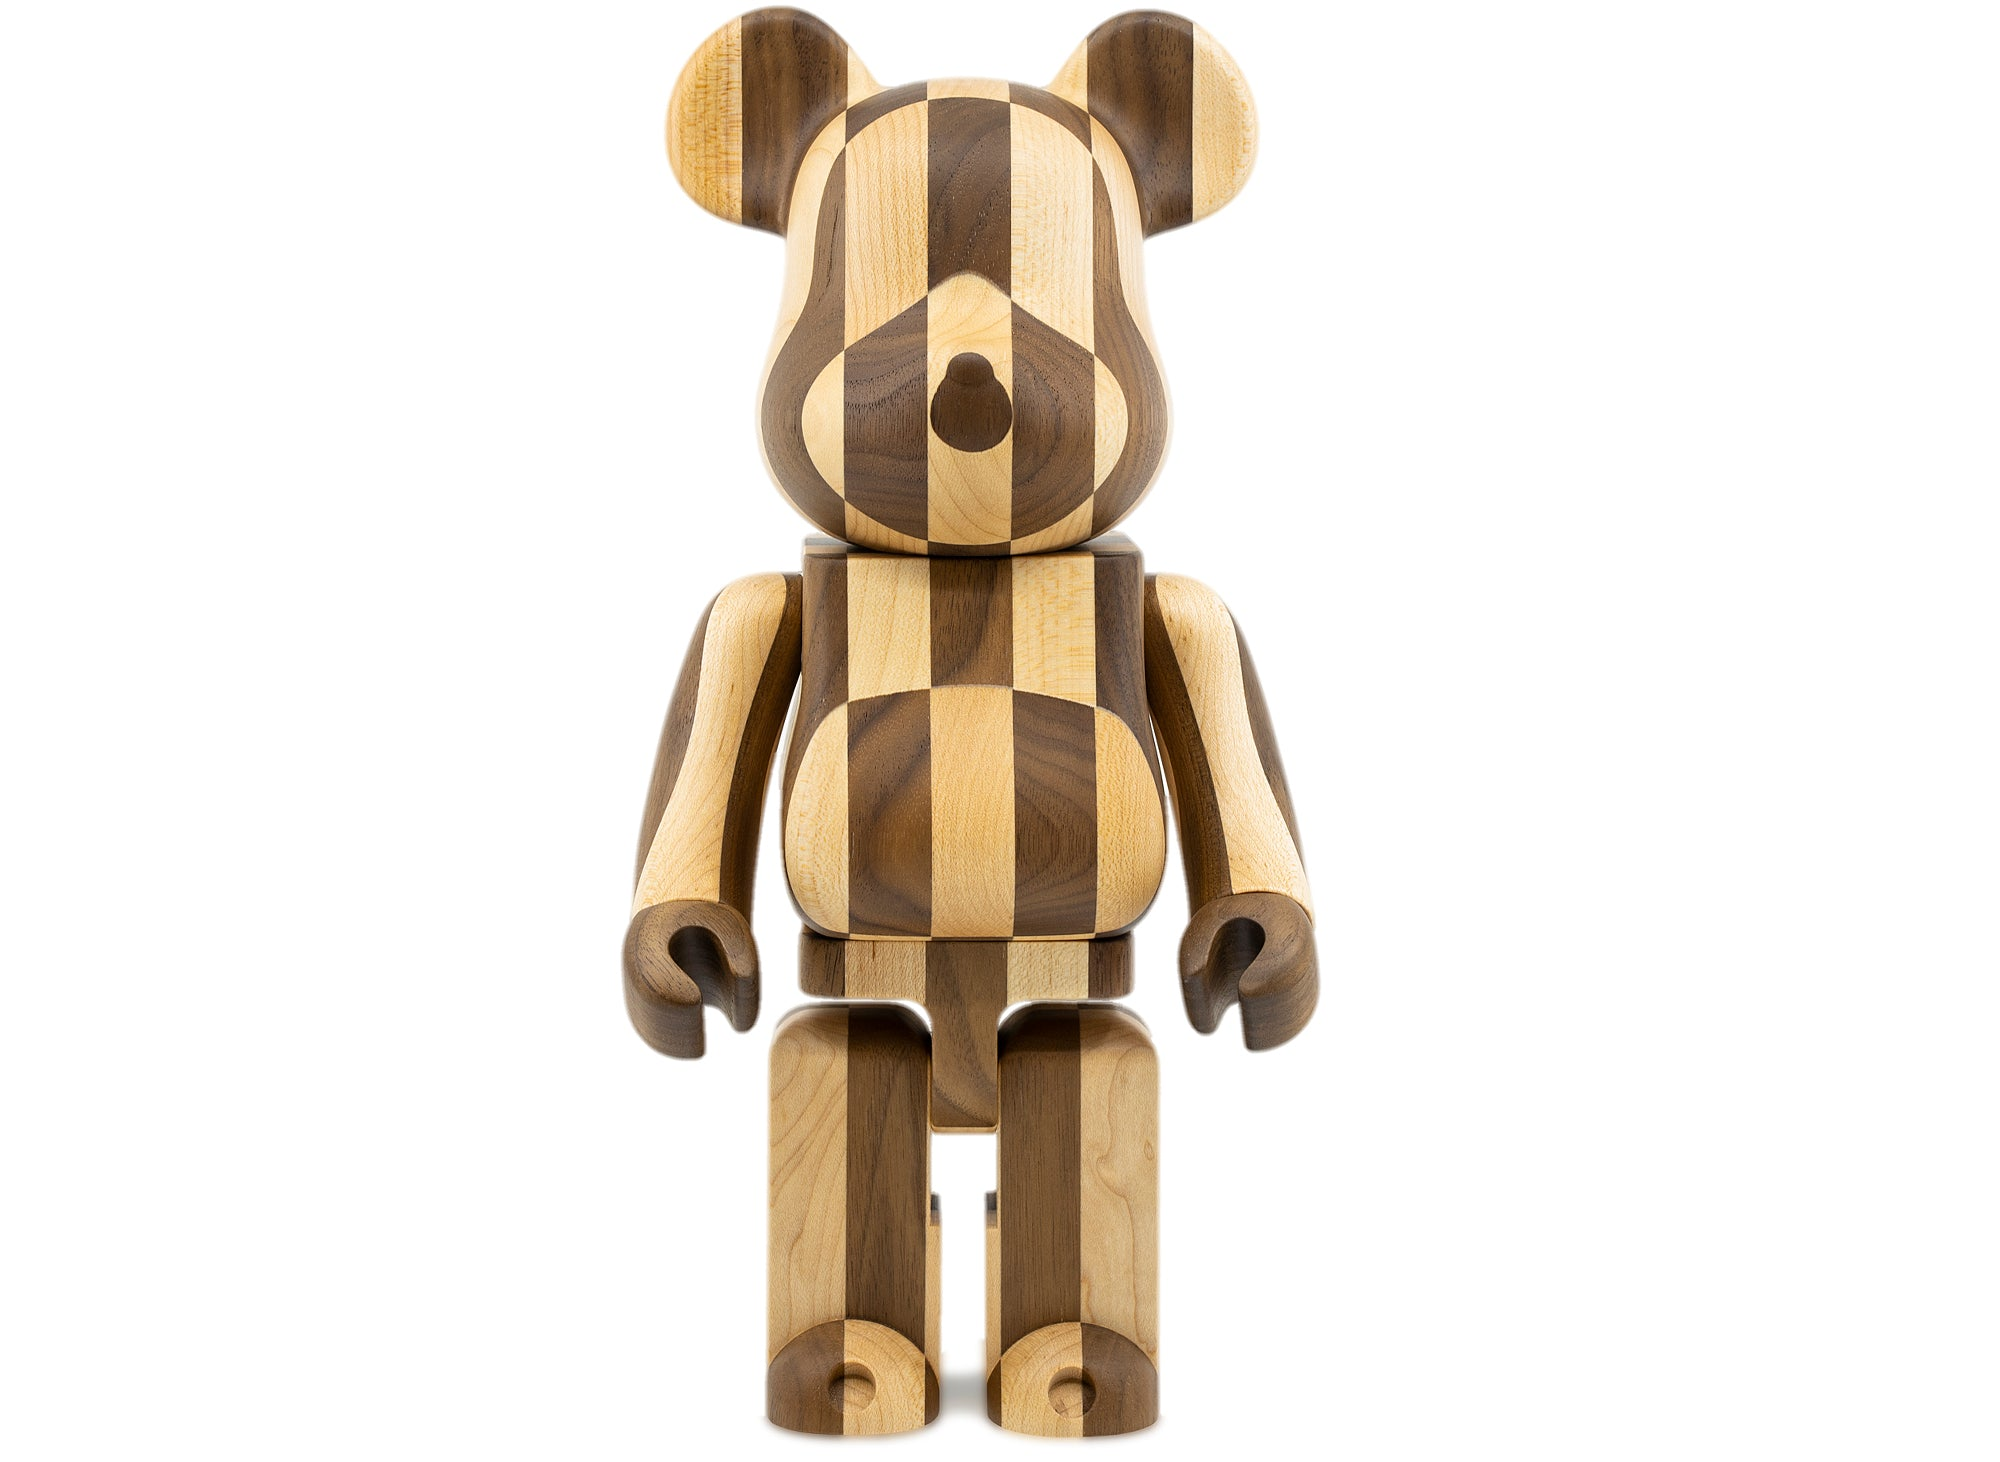 Medicom Toy BE@RBRICK Karimoku Longitudinal Chess 400% xld